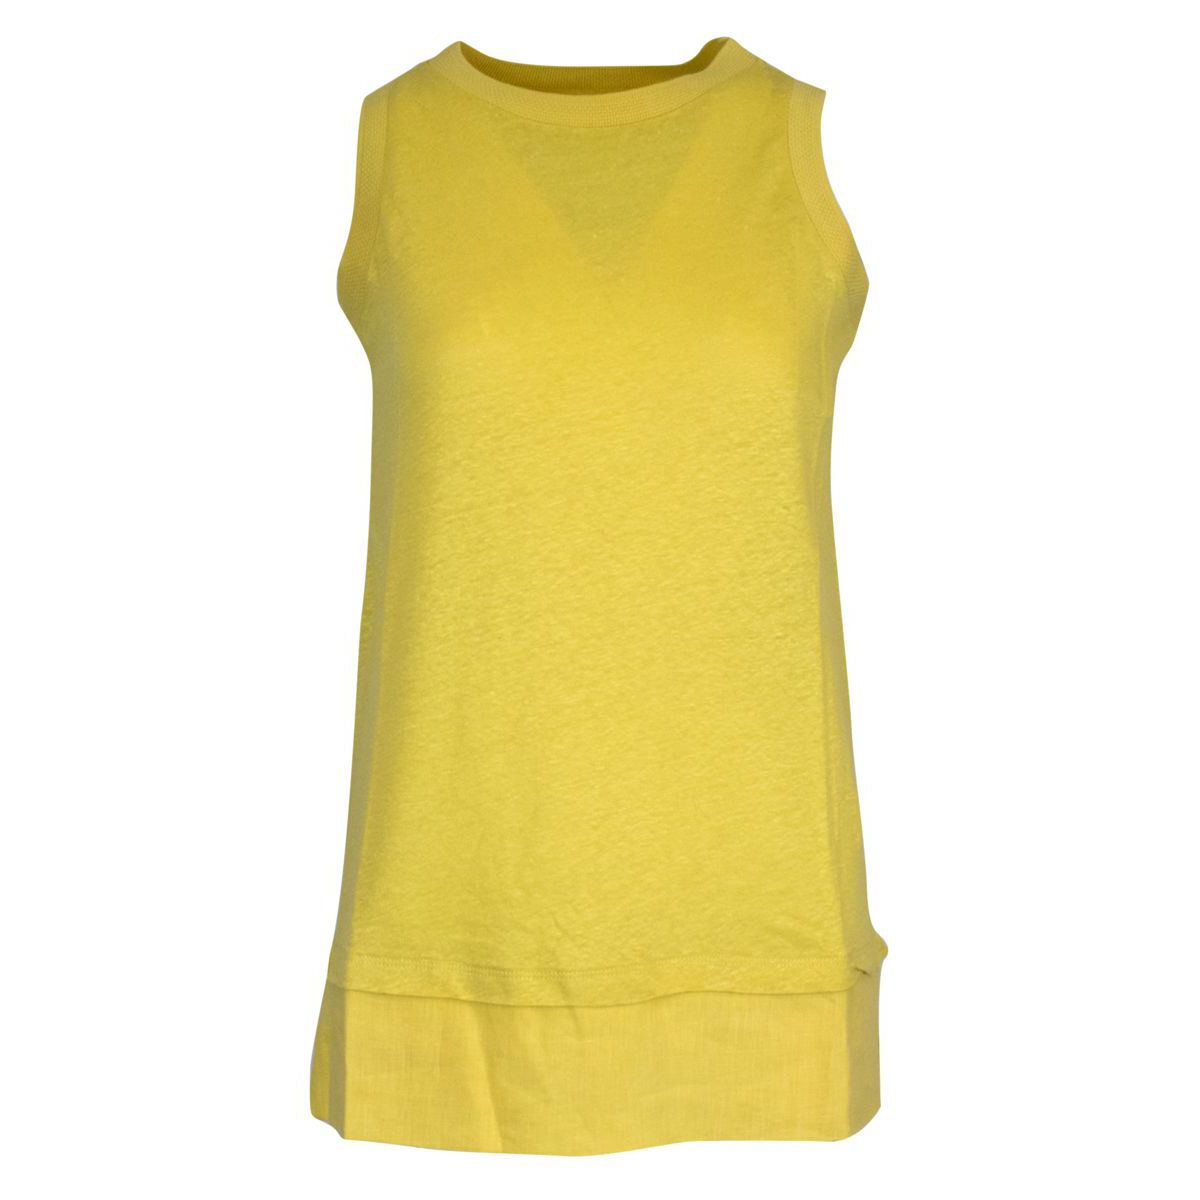 Solid color sleeveless crew neck sweater Lime Alpha Studio